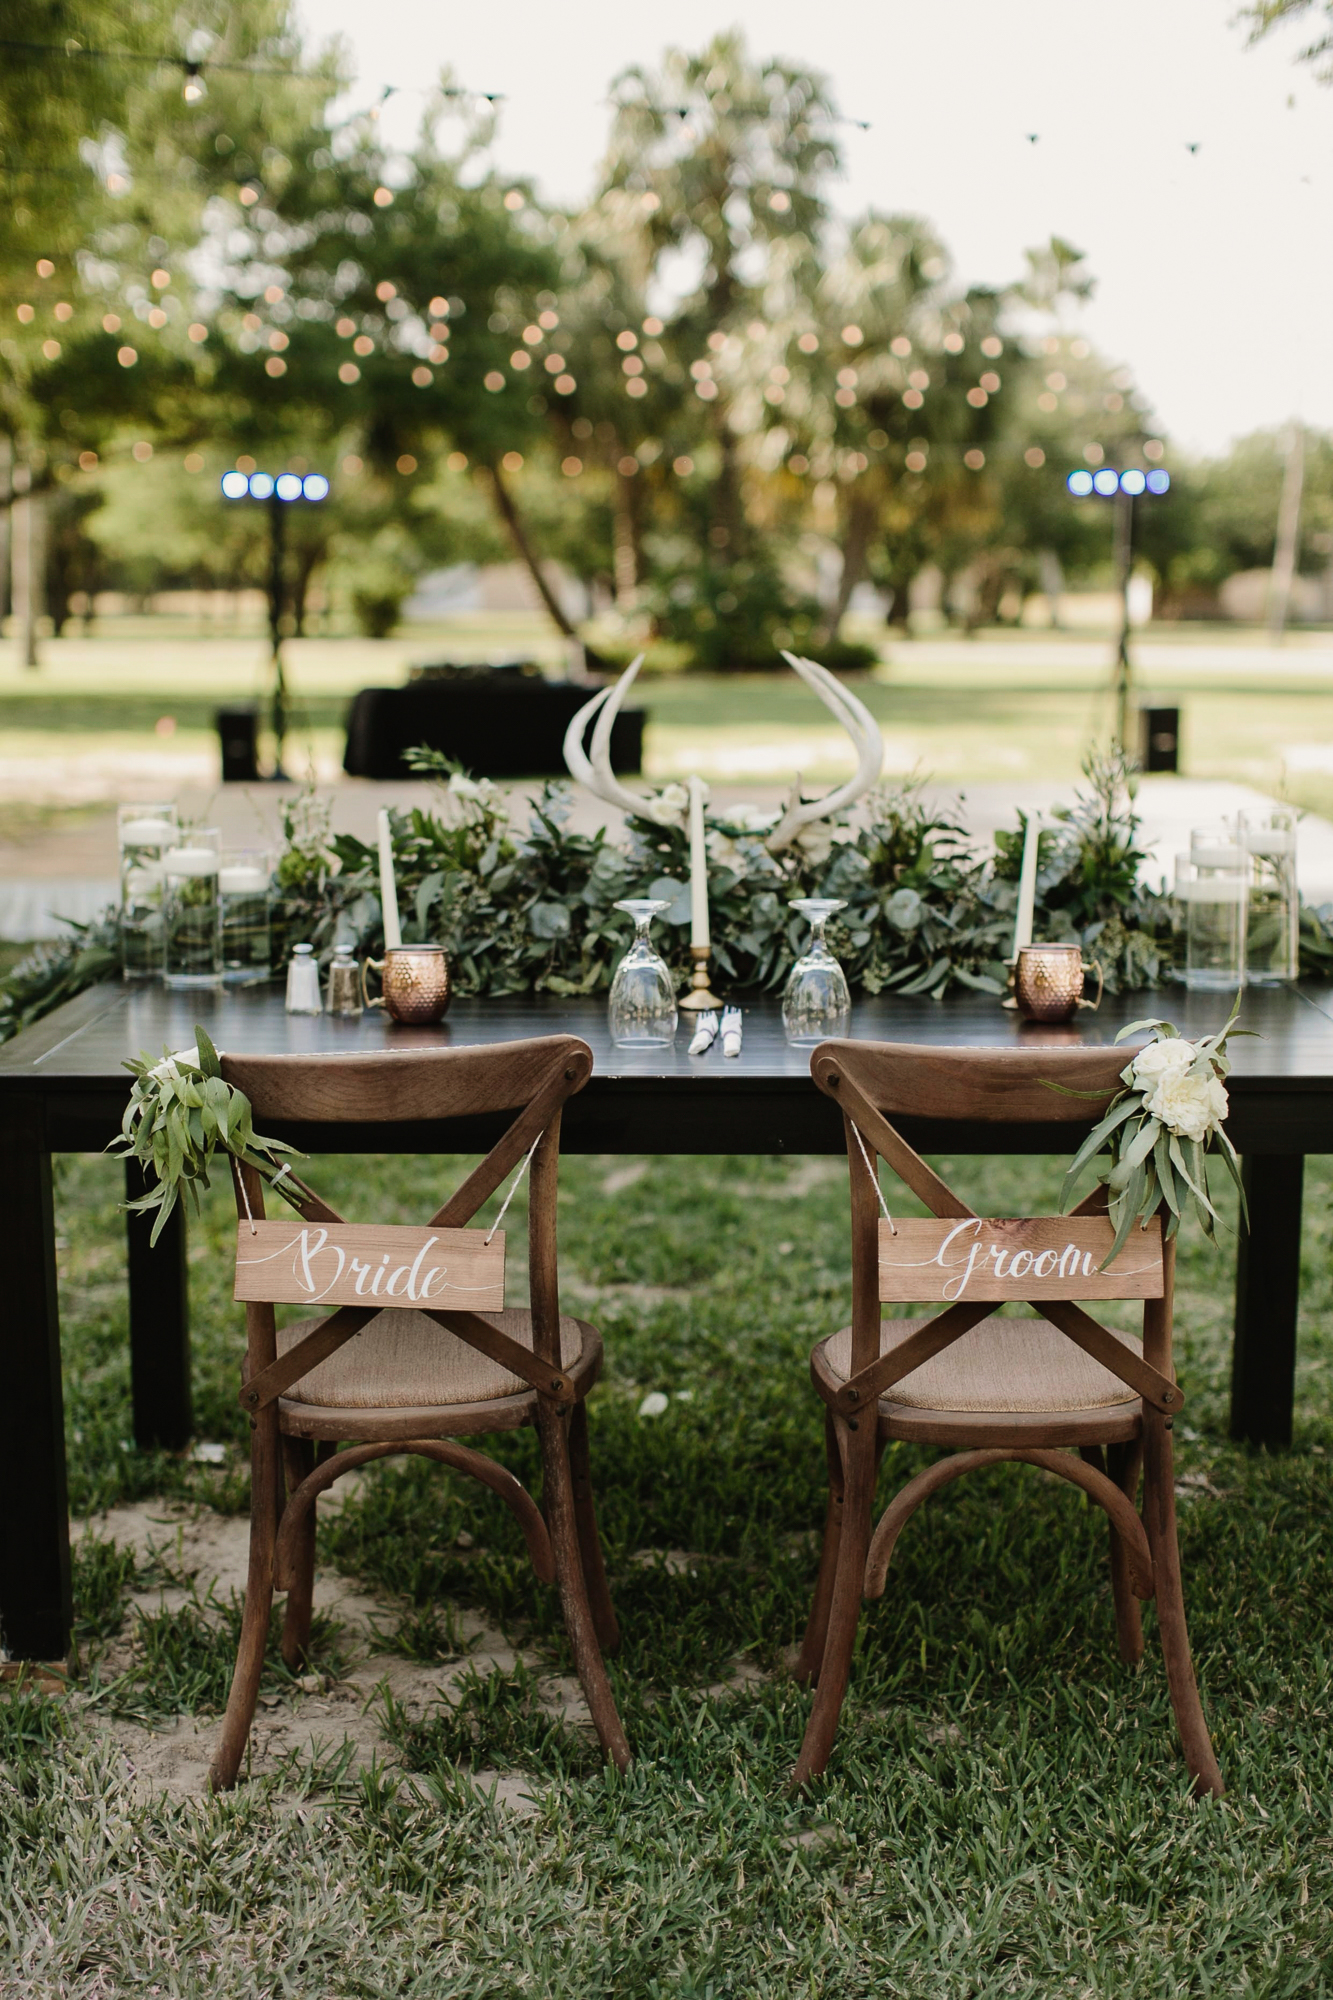 alfonso_flores_destination_wedding_photography_rancho_la_pergola_brownsville_texas110.jpg